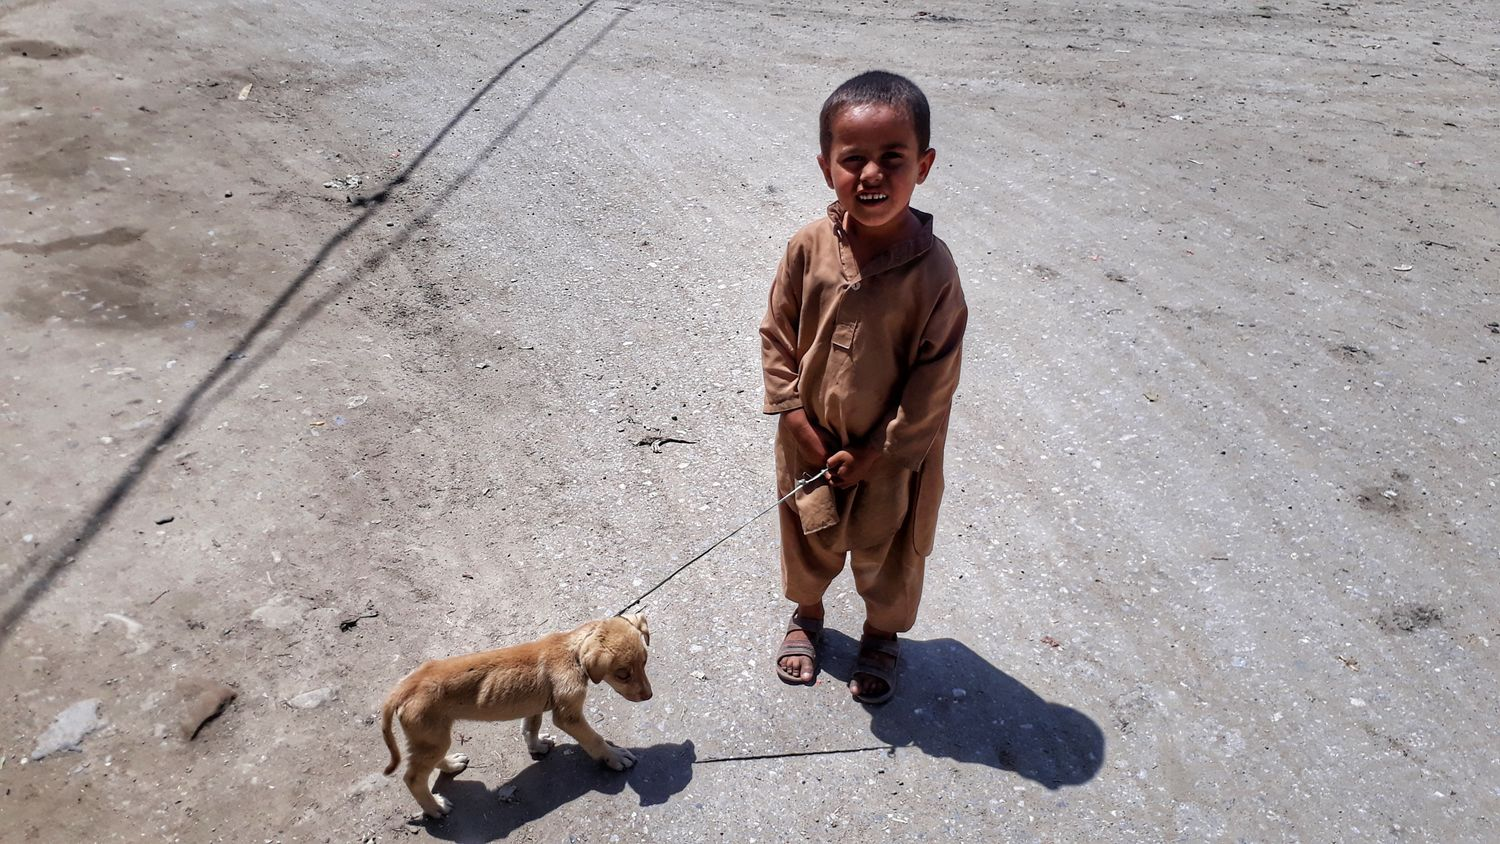 TCPM Full Length One Man Only Only Men Adult One Animal Pets Outdoors Mammal Domestic Animals Men Day One Person Dog Portrait Young Adult Art Is Everywhere Dogs Dog And Kid No Filter Simple Photography SIMPLYHDR Simplicity Is Beauty. Heart Touching  Panta Magazine